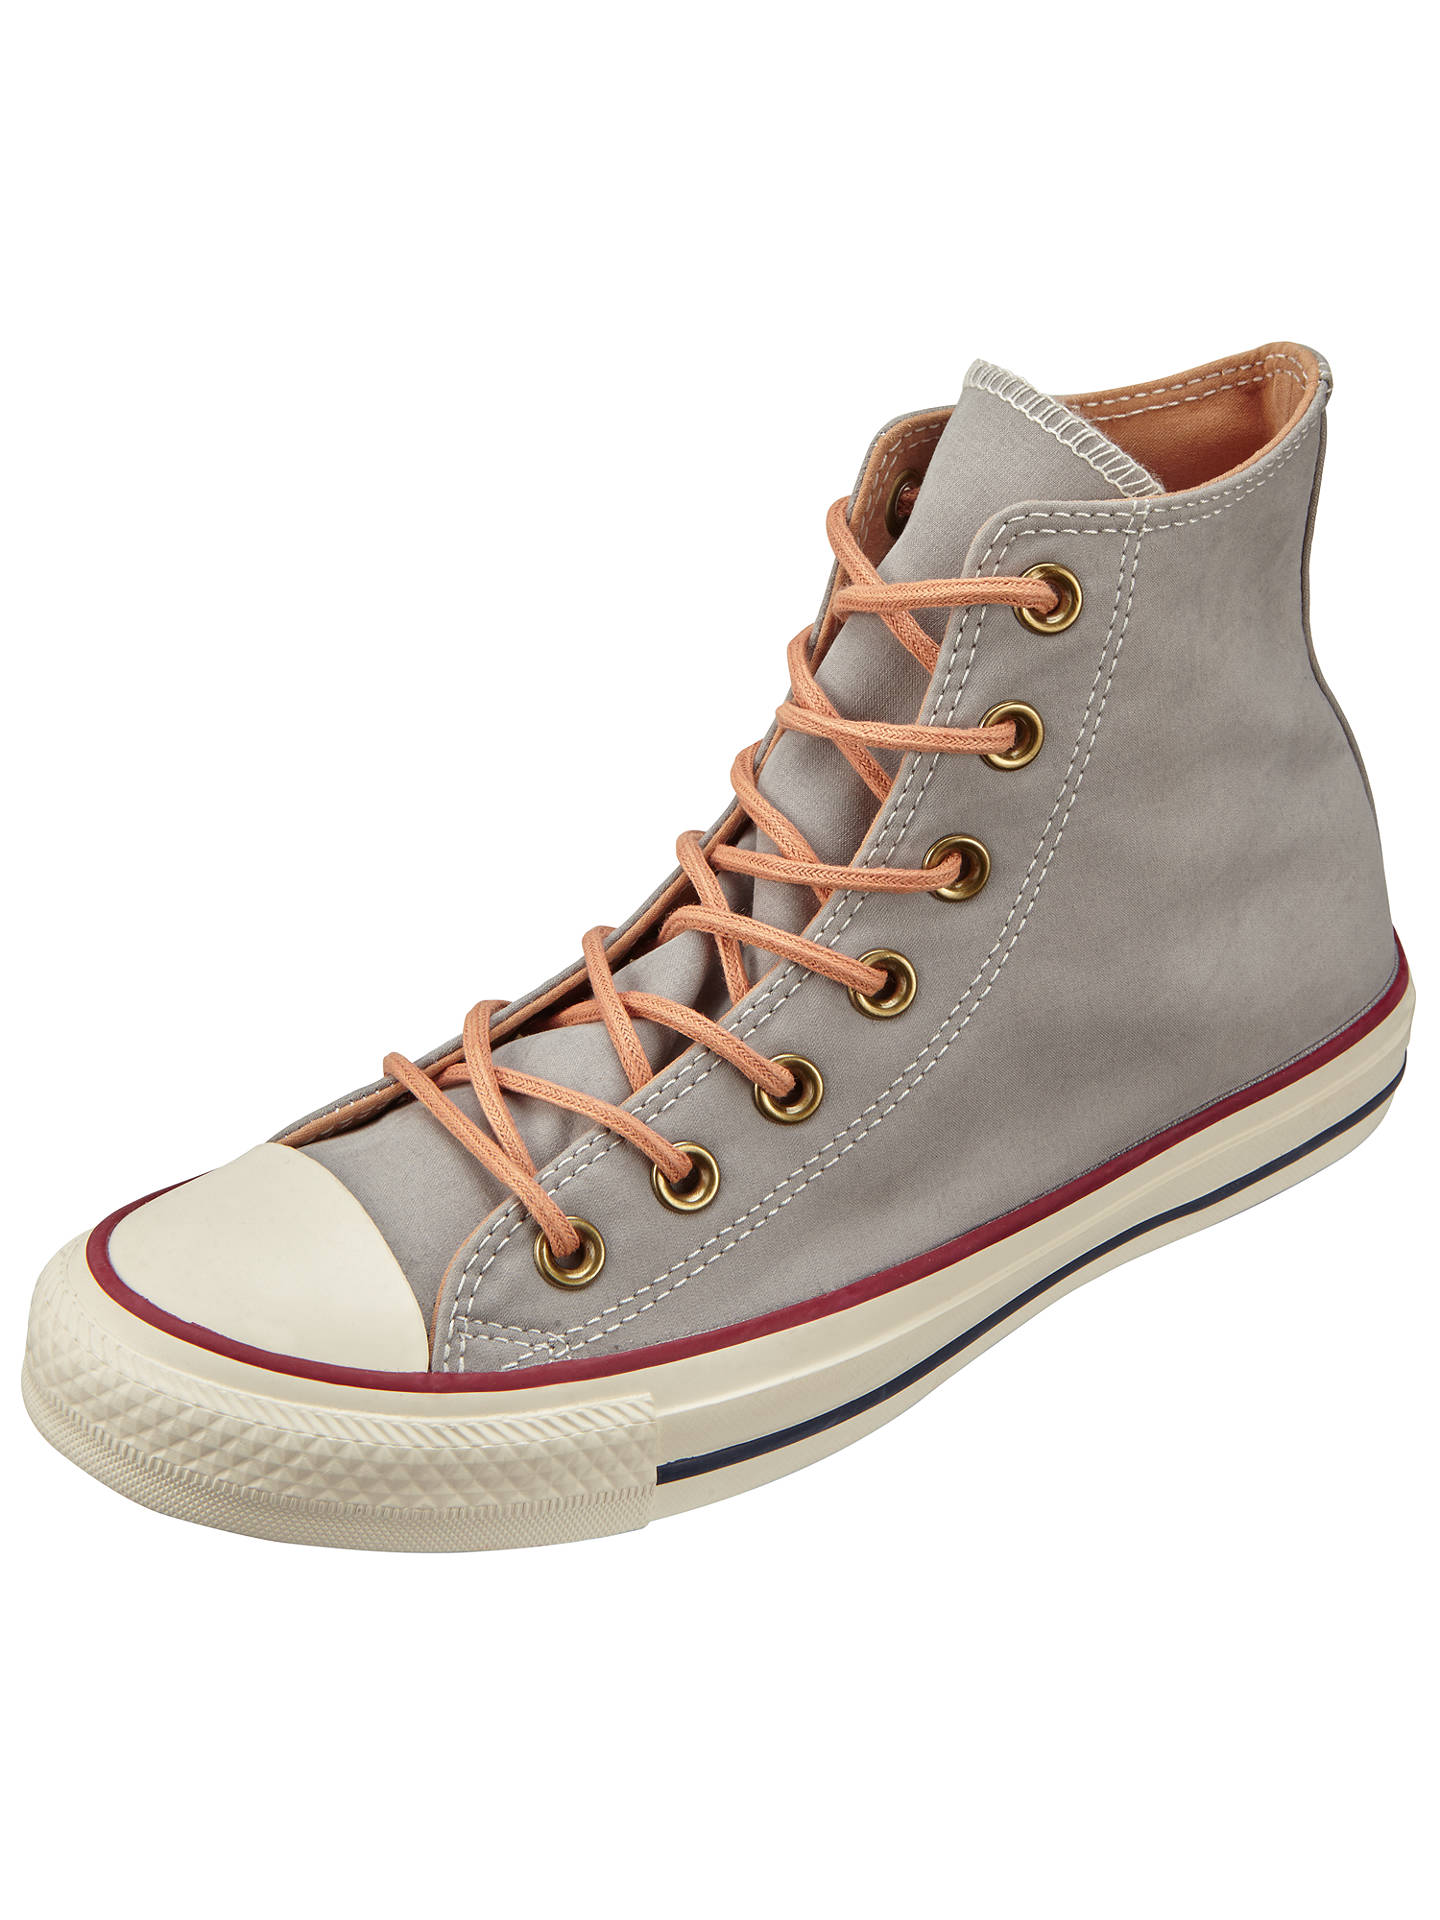 257ad4f137f Buy Converse Chuck Taylor All Star Peached Hi Top Trainers, Dolphin, 3  Online at ...